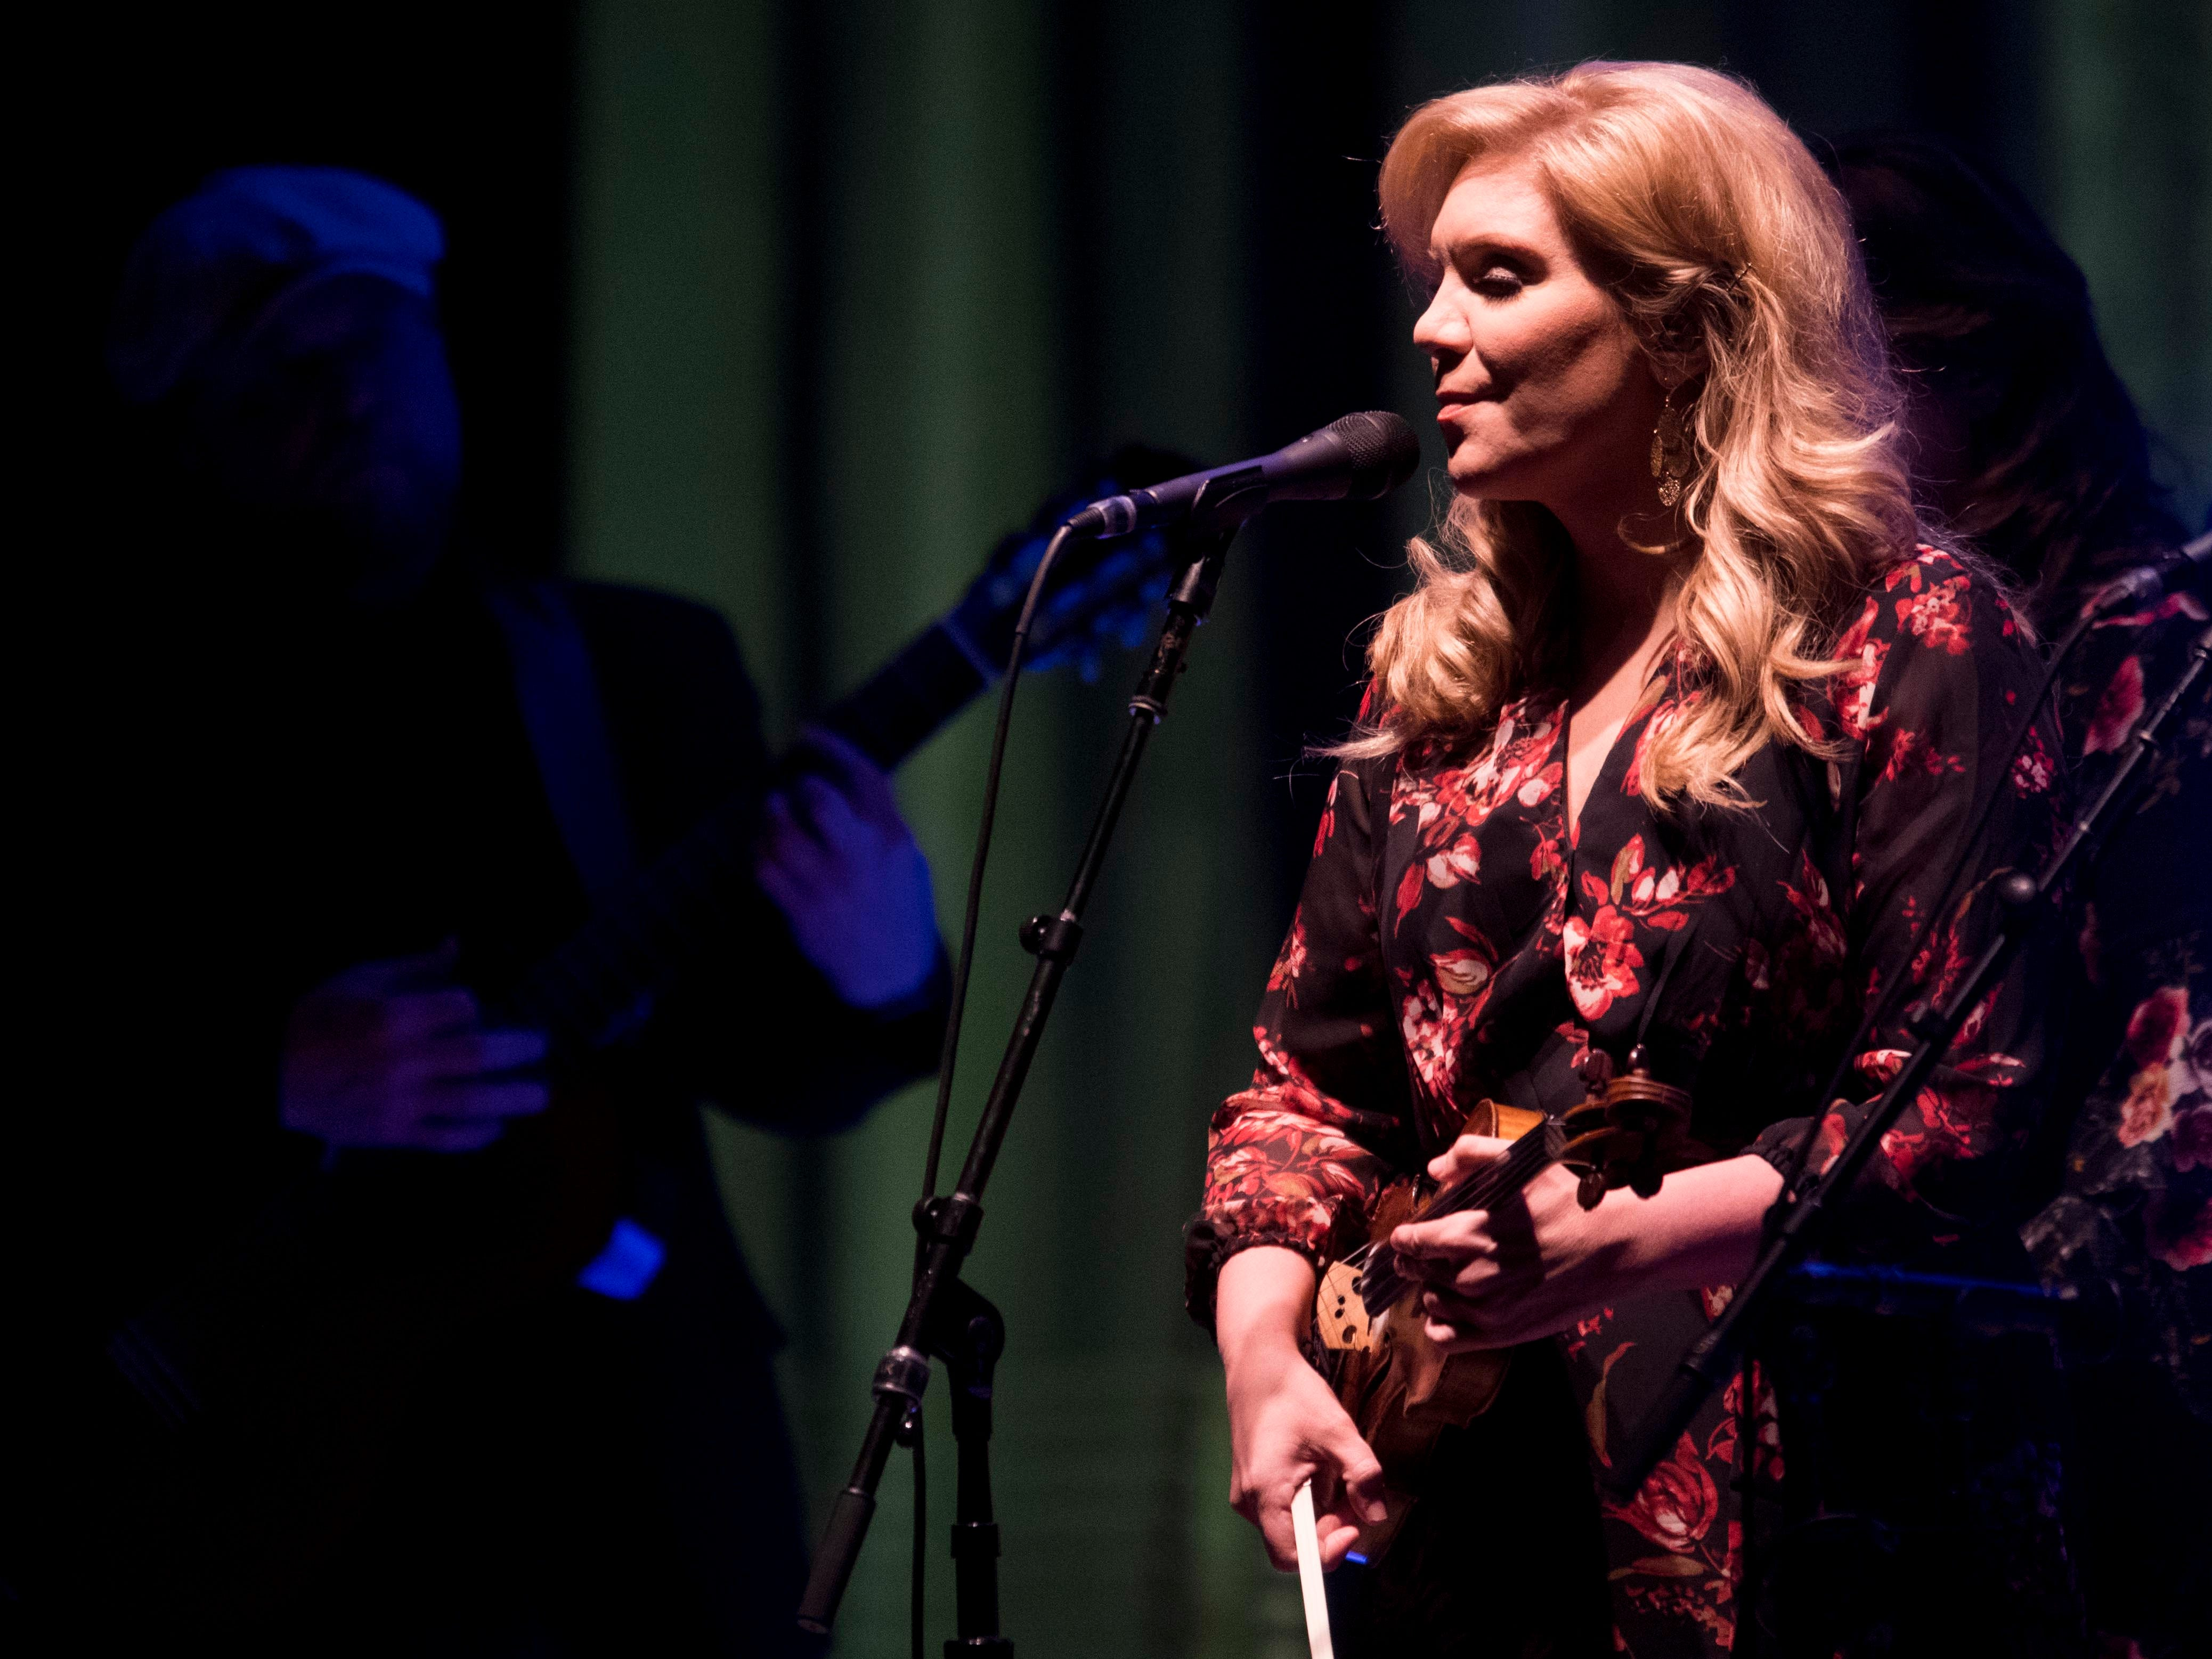 Alison Krauss performs at the Tennessee Theatre on Sunday, September 30, 2018 as part of the Theatre's 90-year Gala.